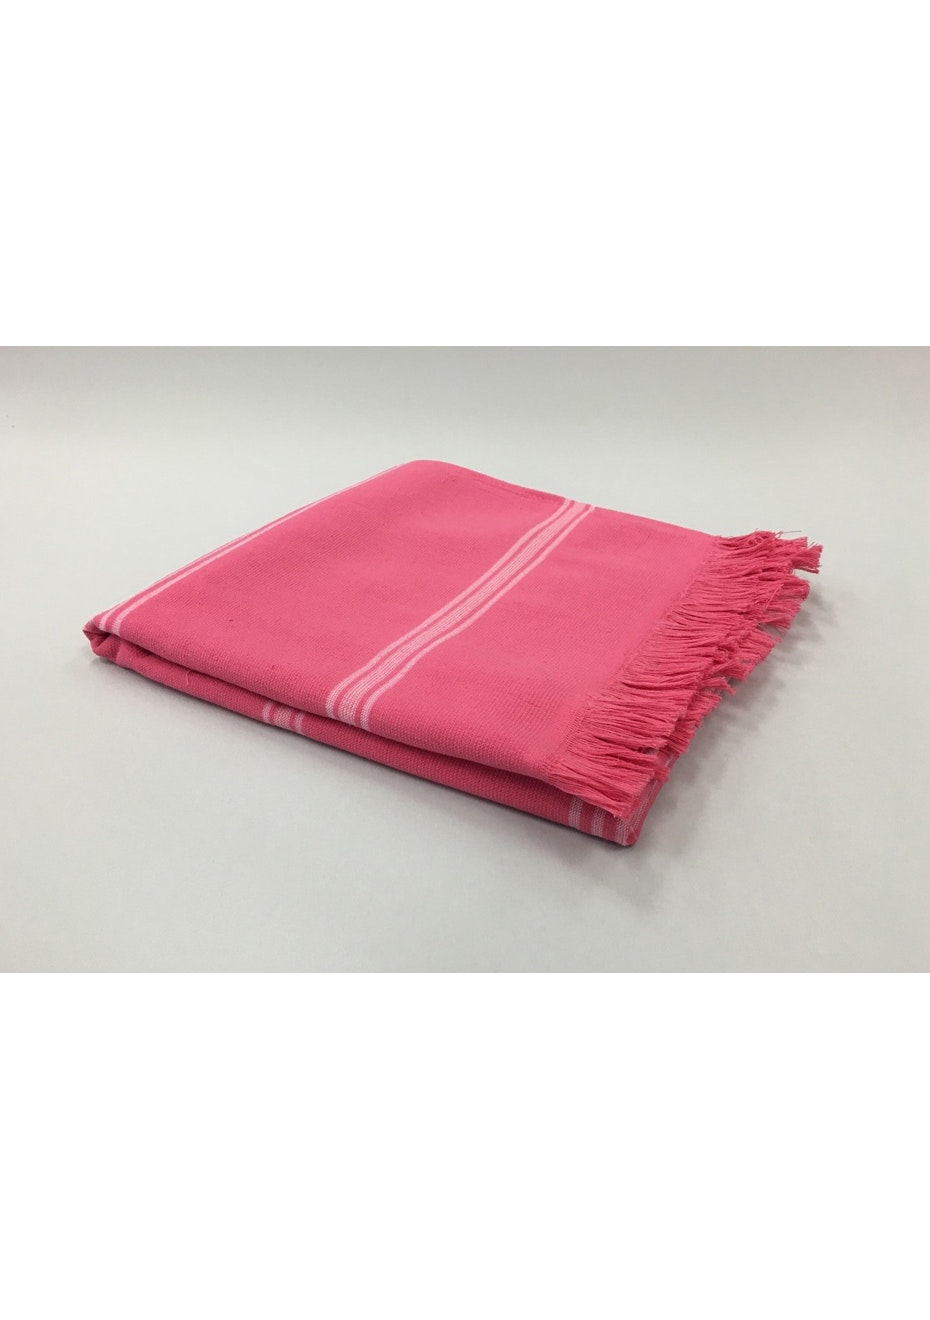 2 Pack Pink Cotton Turkish Towel